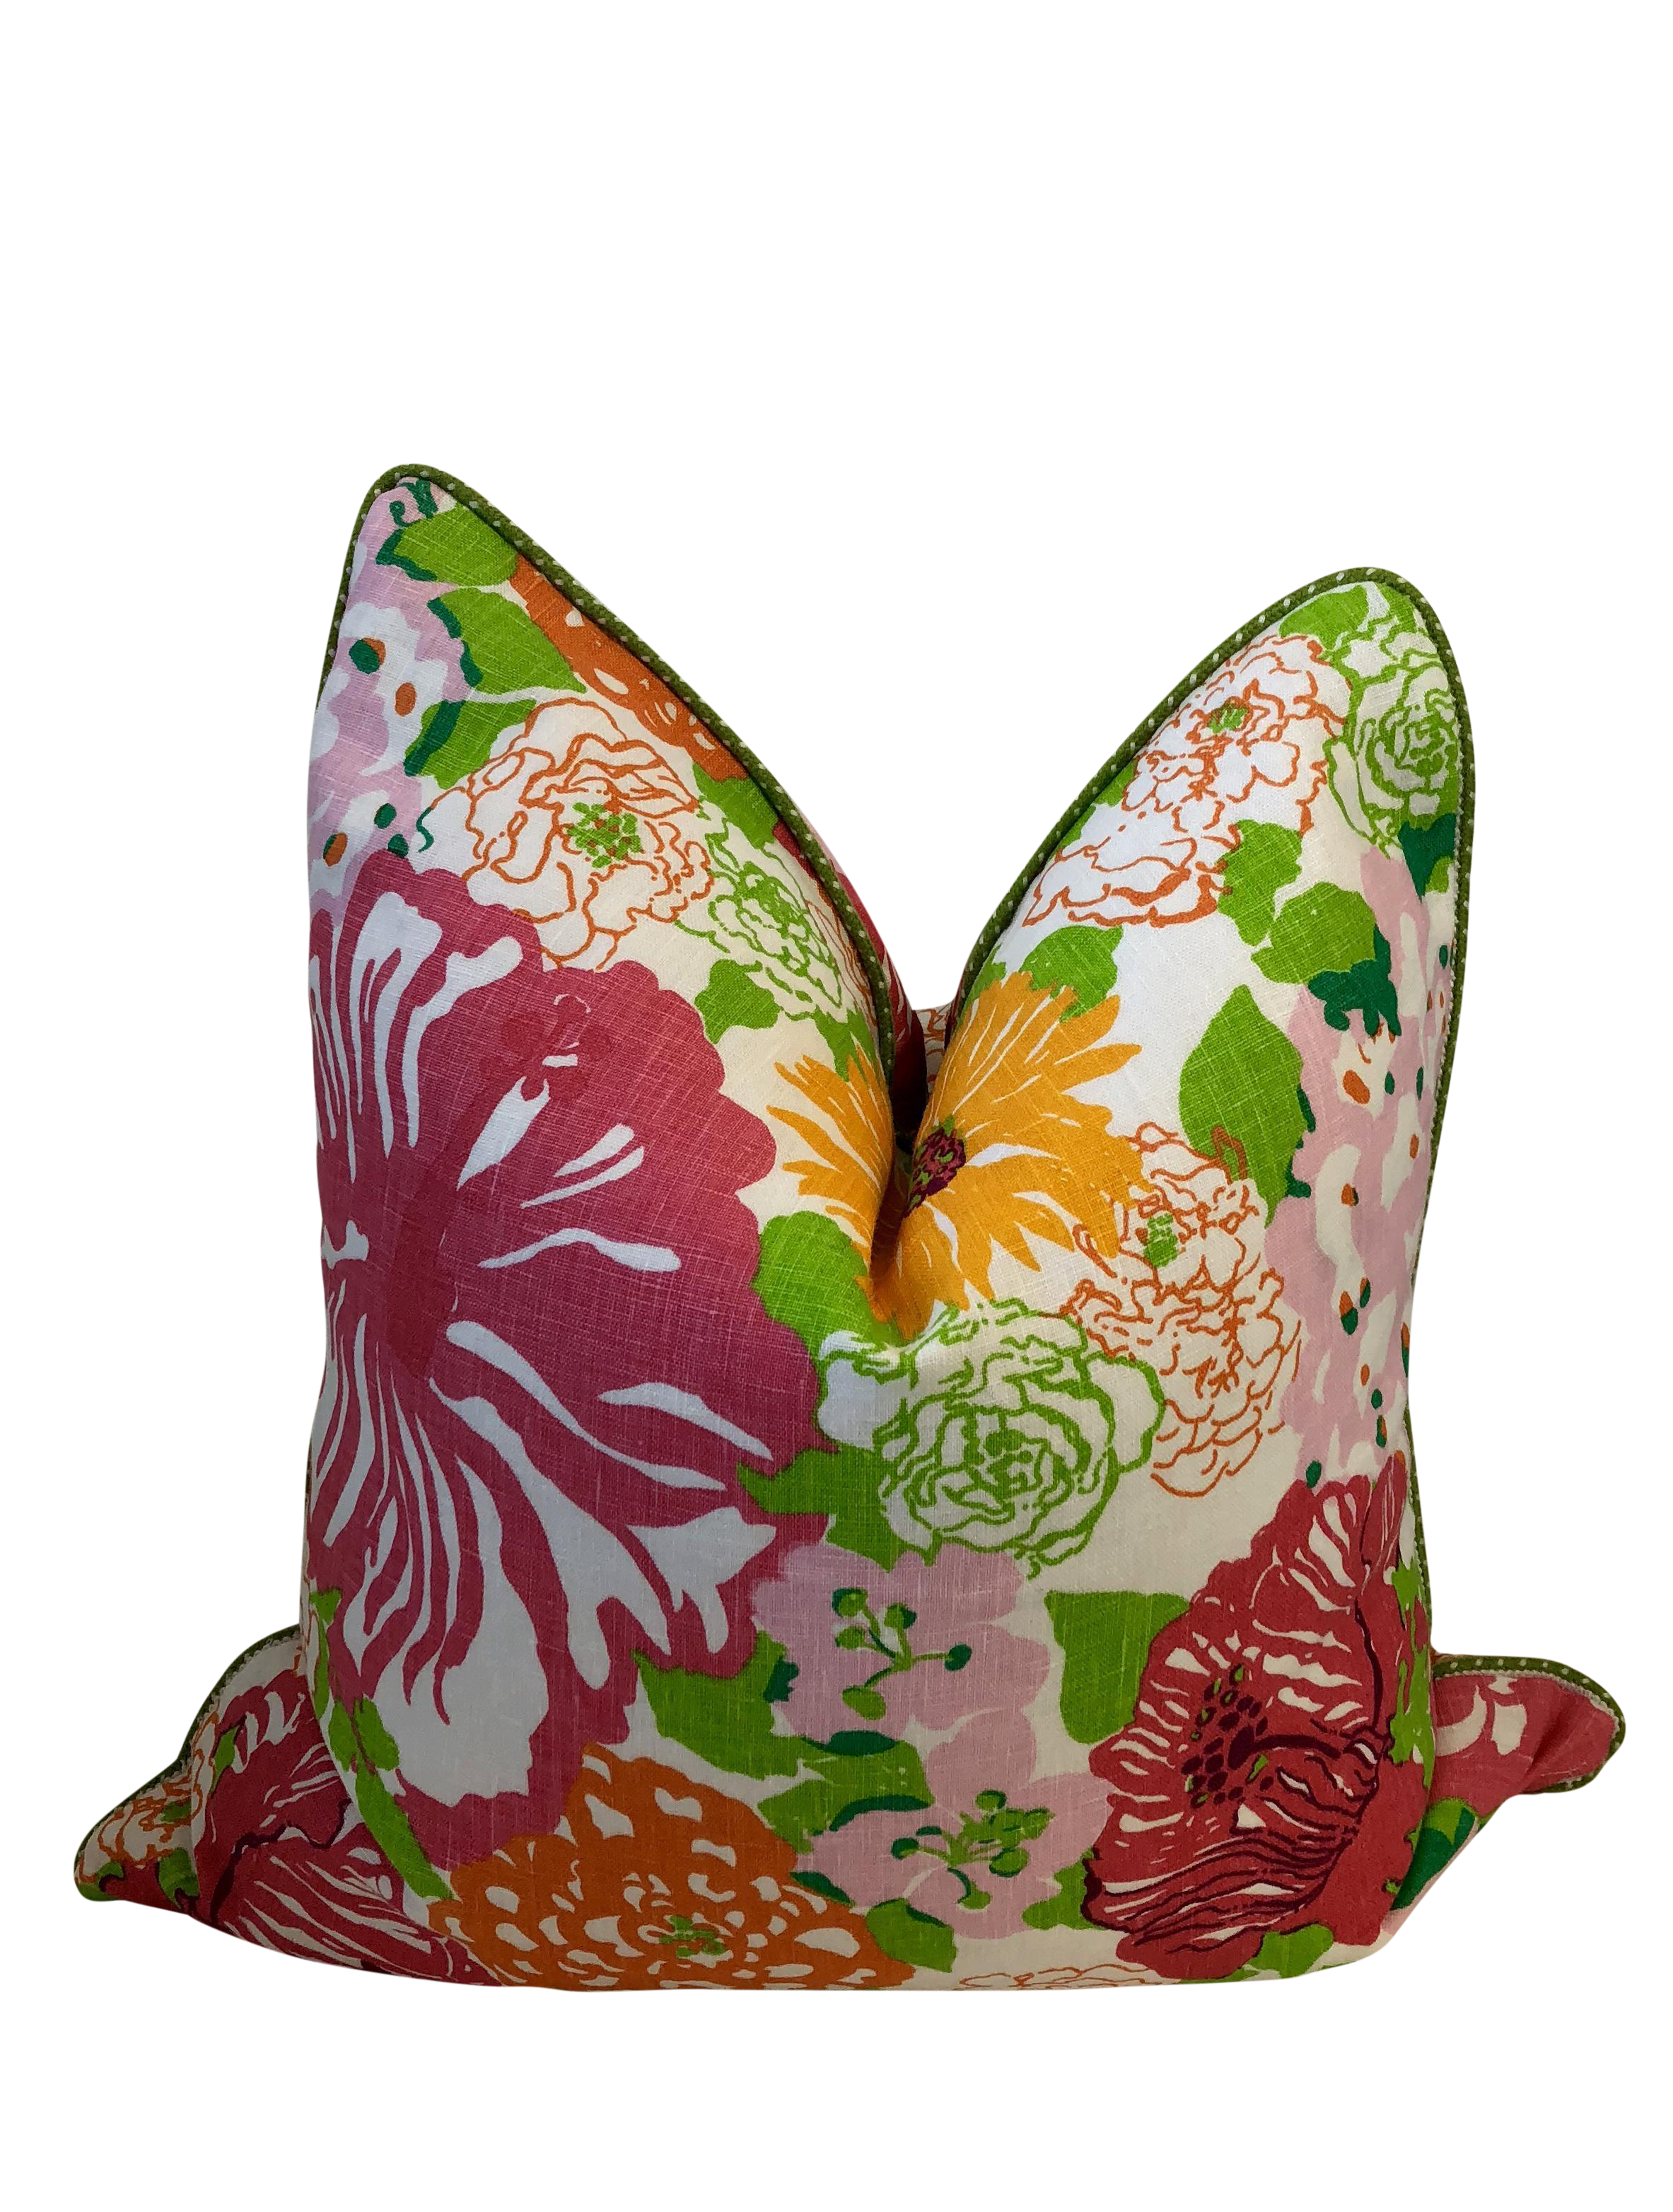 20x20 Pink Lilly Pulitzer Heritage Floral Throw Pillow Chairish